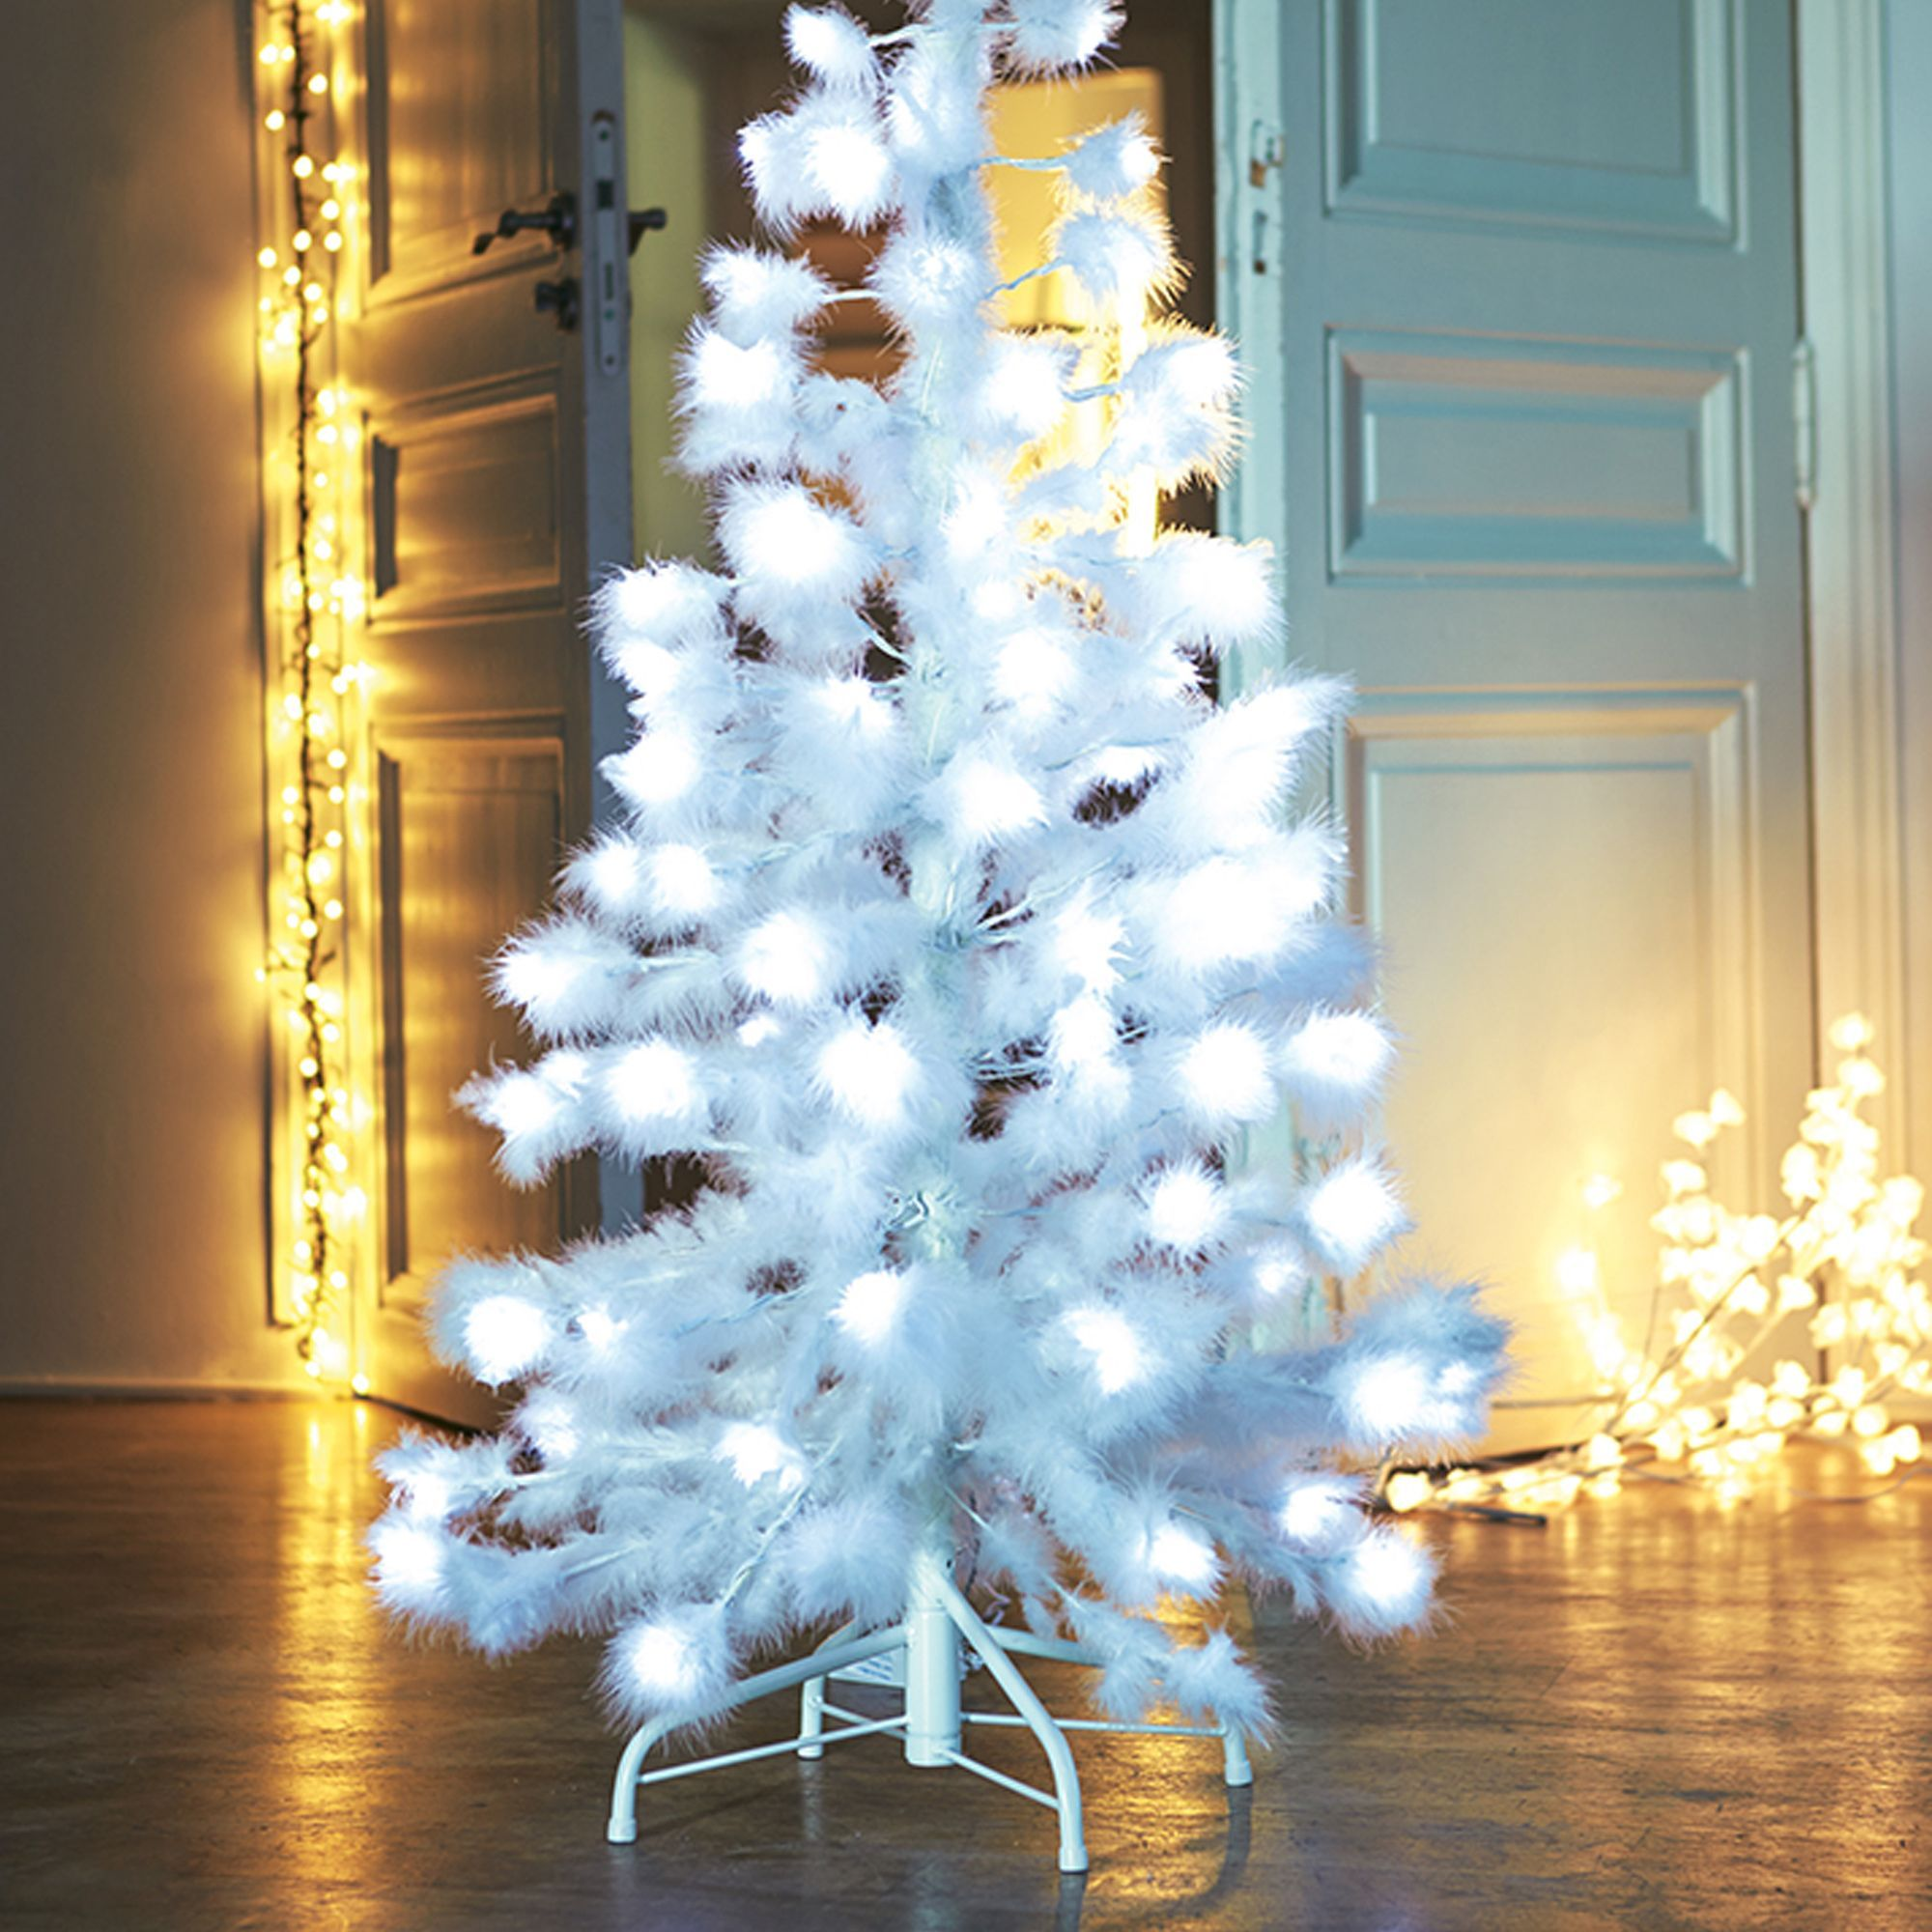 Sapin lectrique plumes 1m20 blanc sapin plumes for Decoration noel interieur